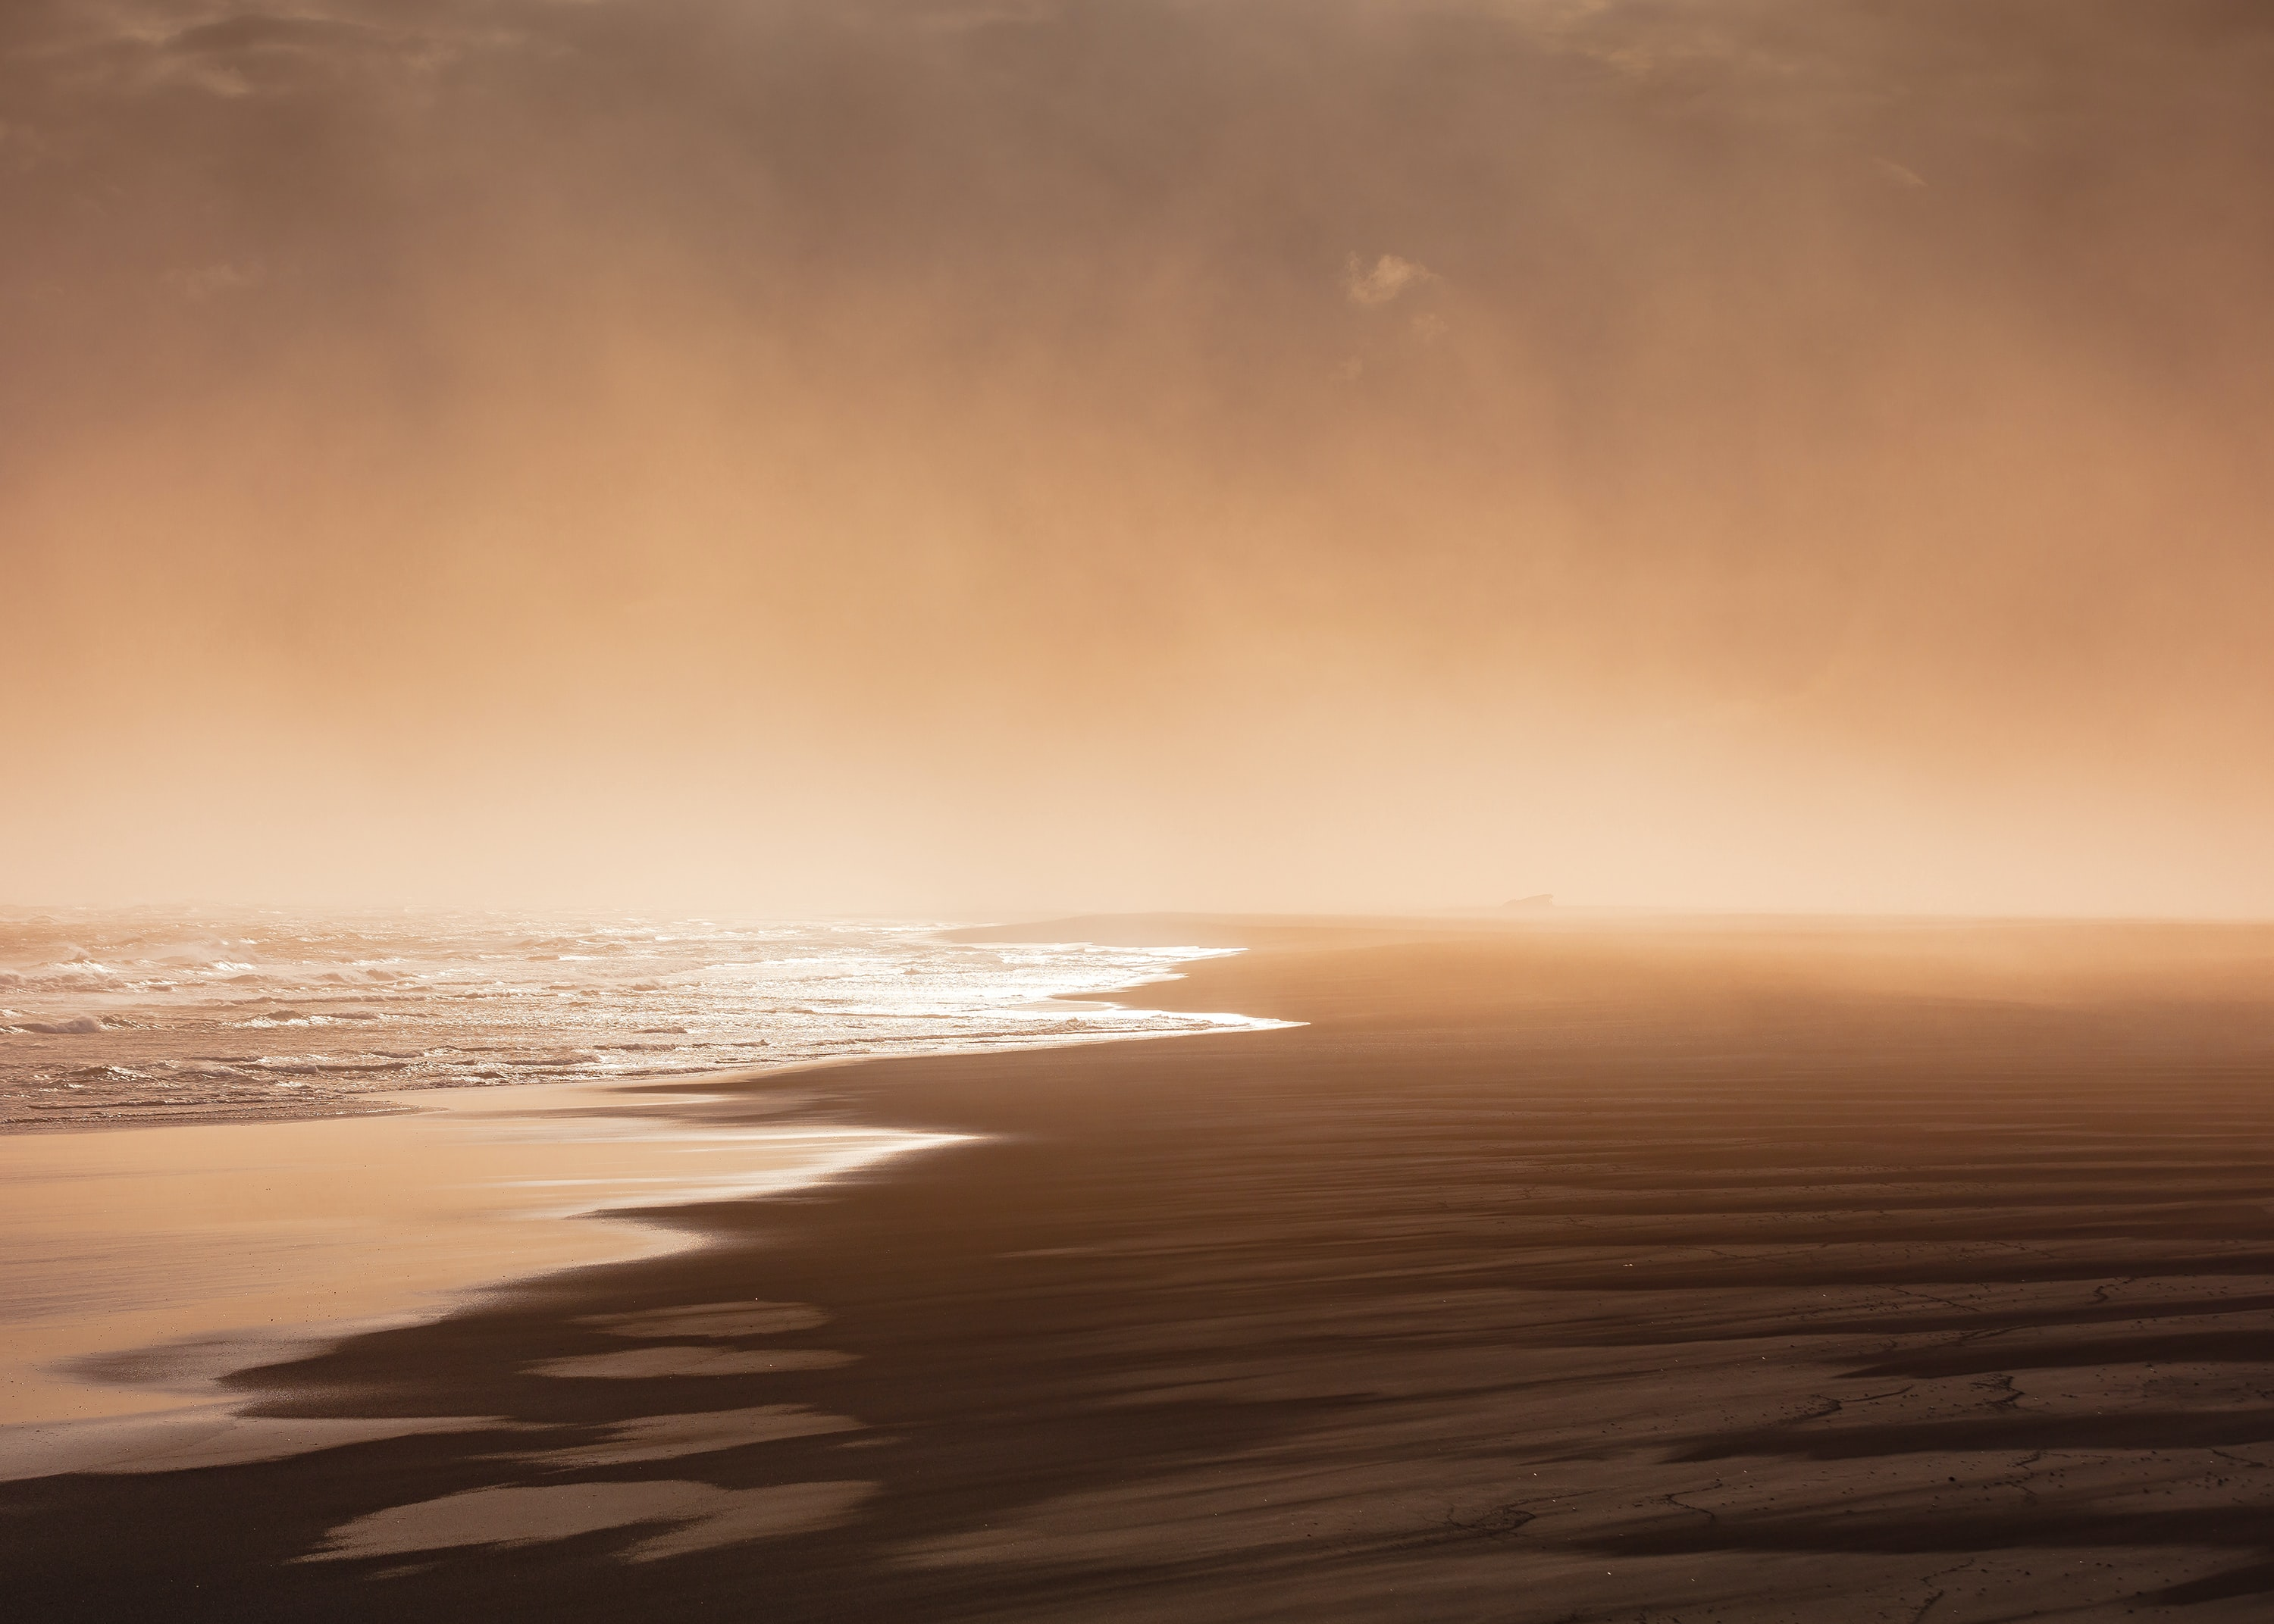 Sunrise through fog from the wet sand beach in Landeyjahöfn